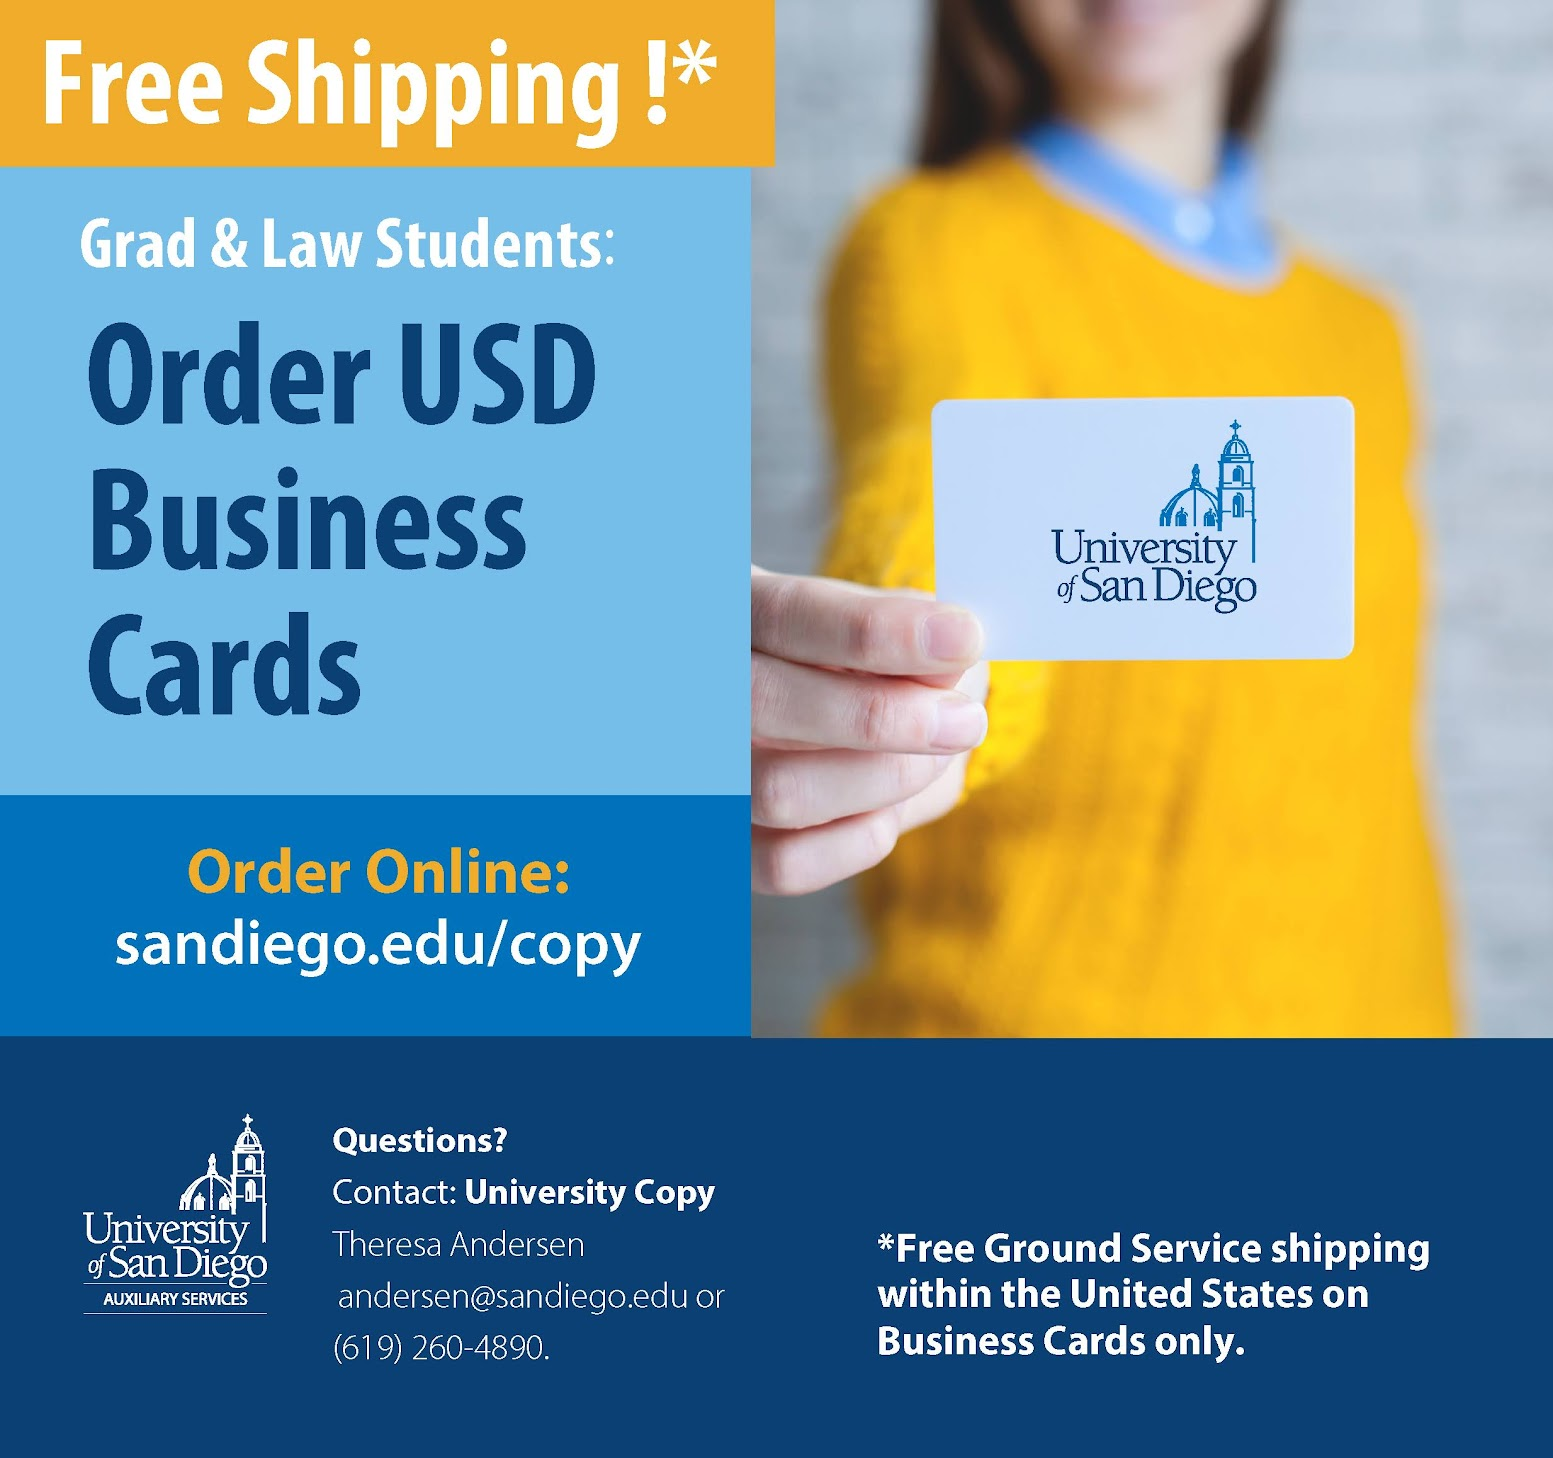 Free shipping on Grad student business cards through USD Copy